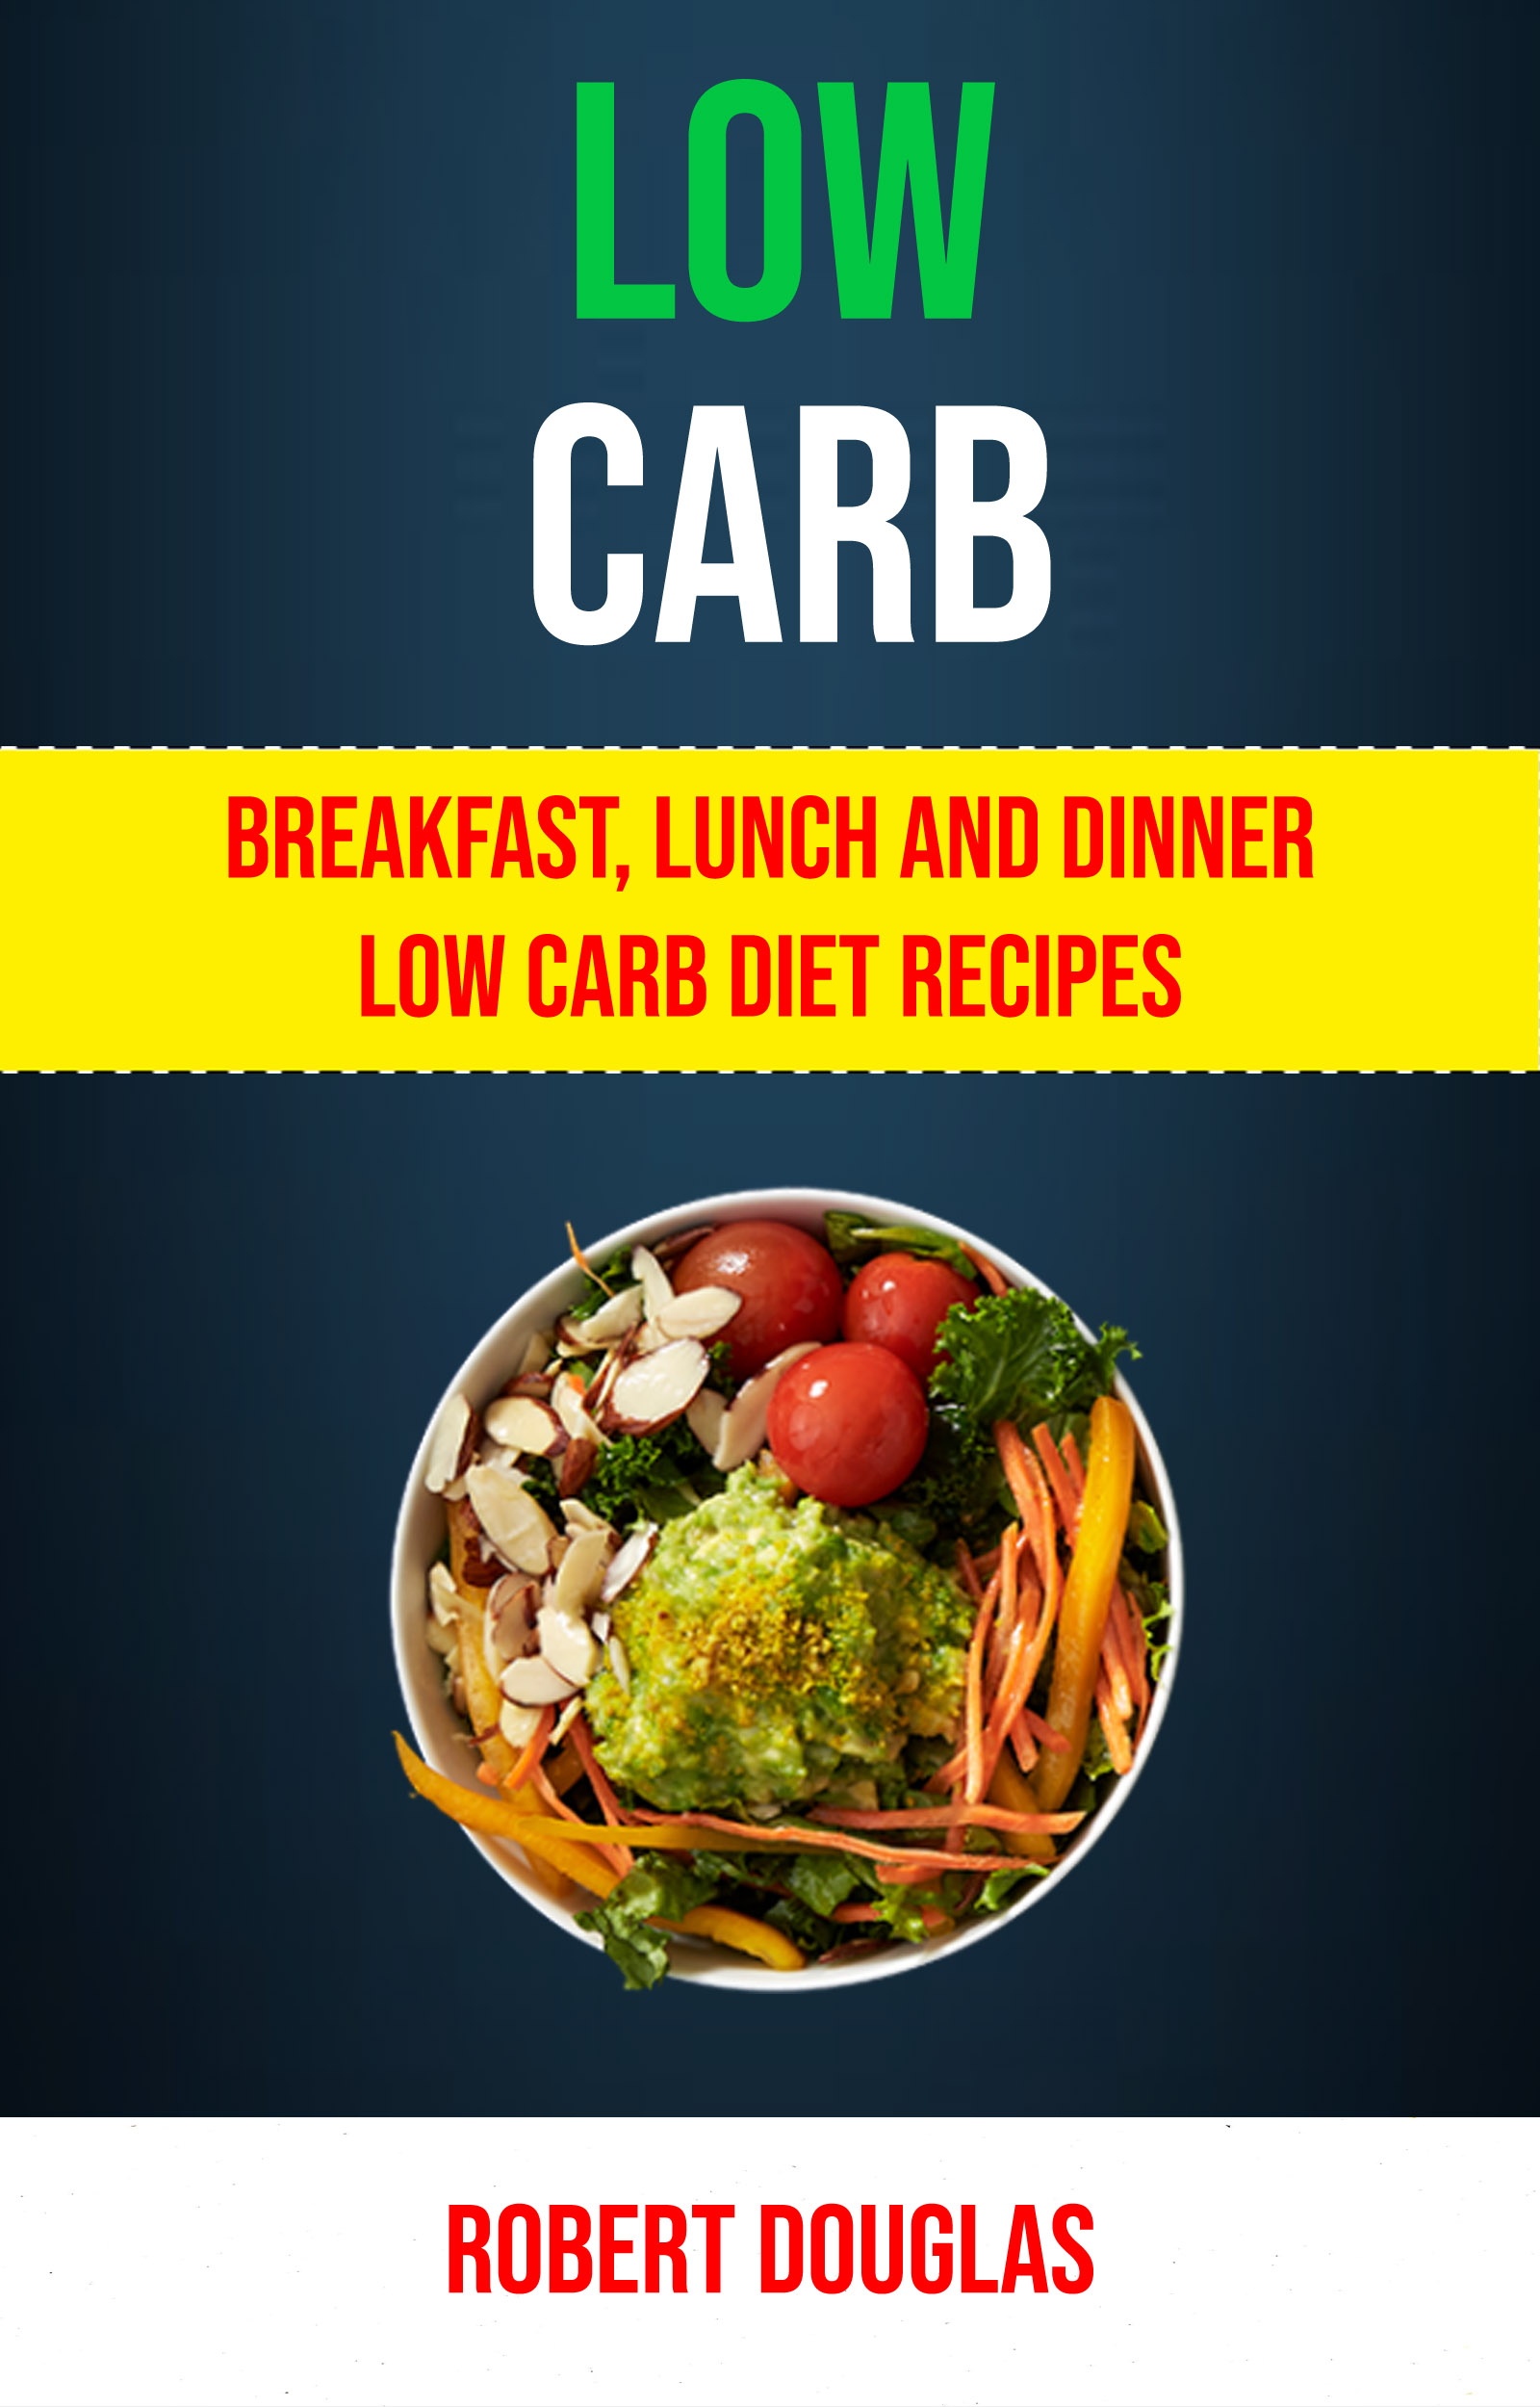 Low carb: breakfast, lunch and dinner low carb diet recipes